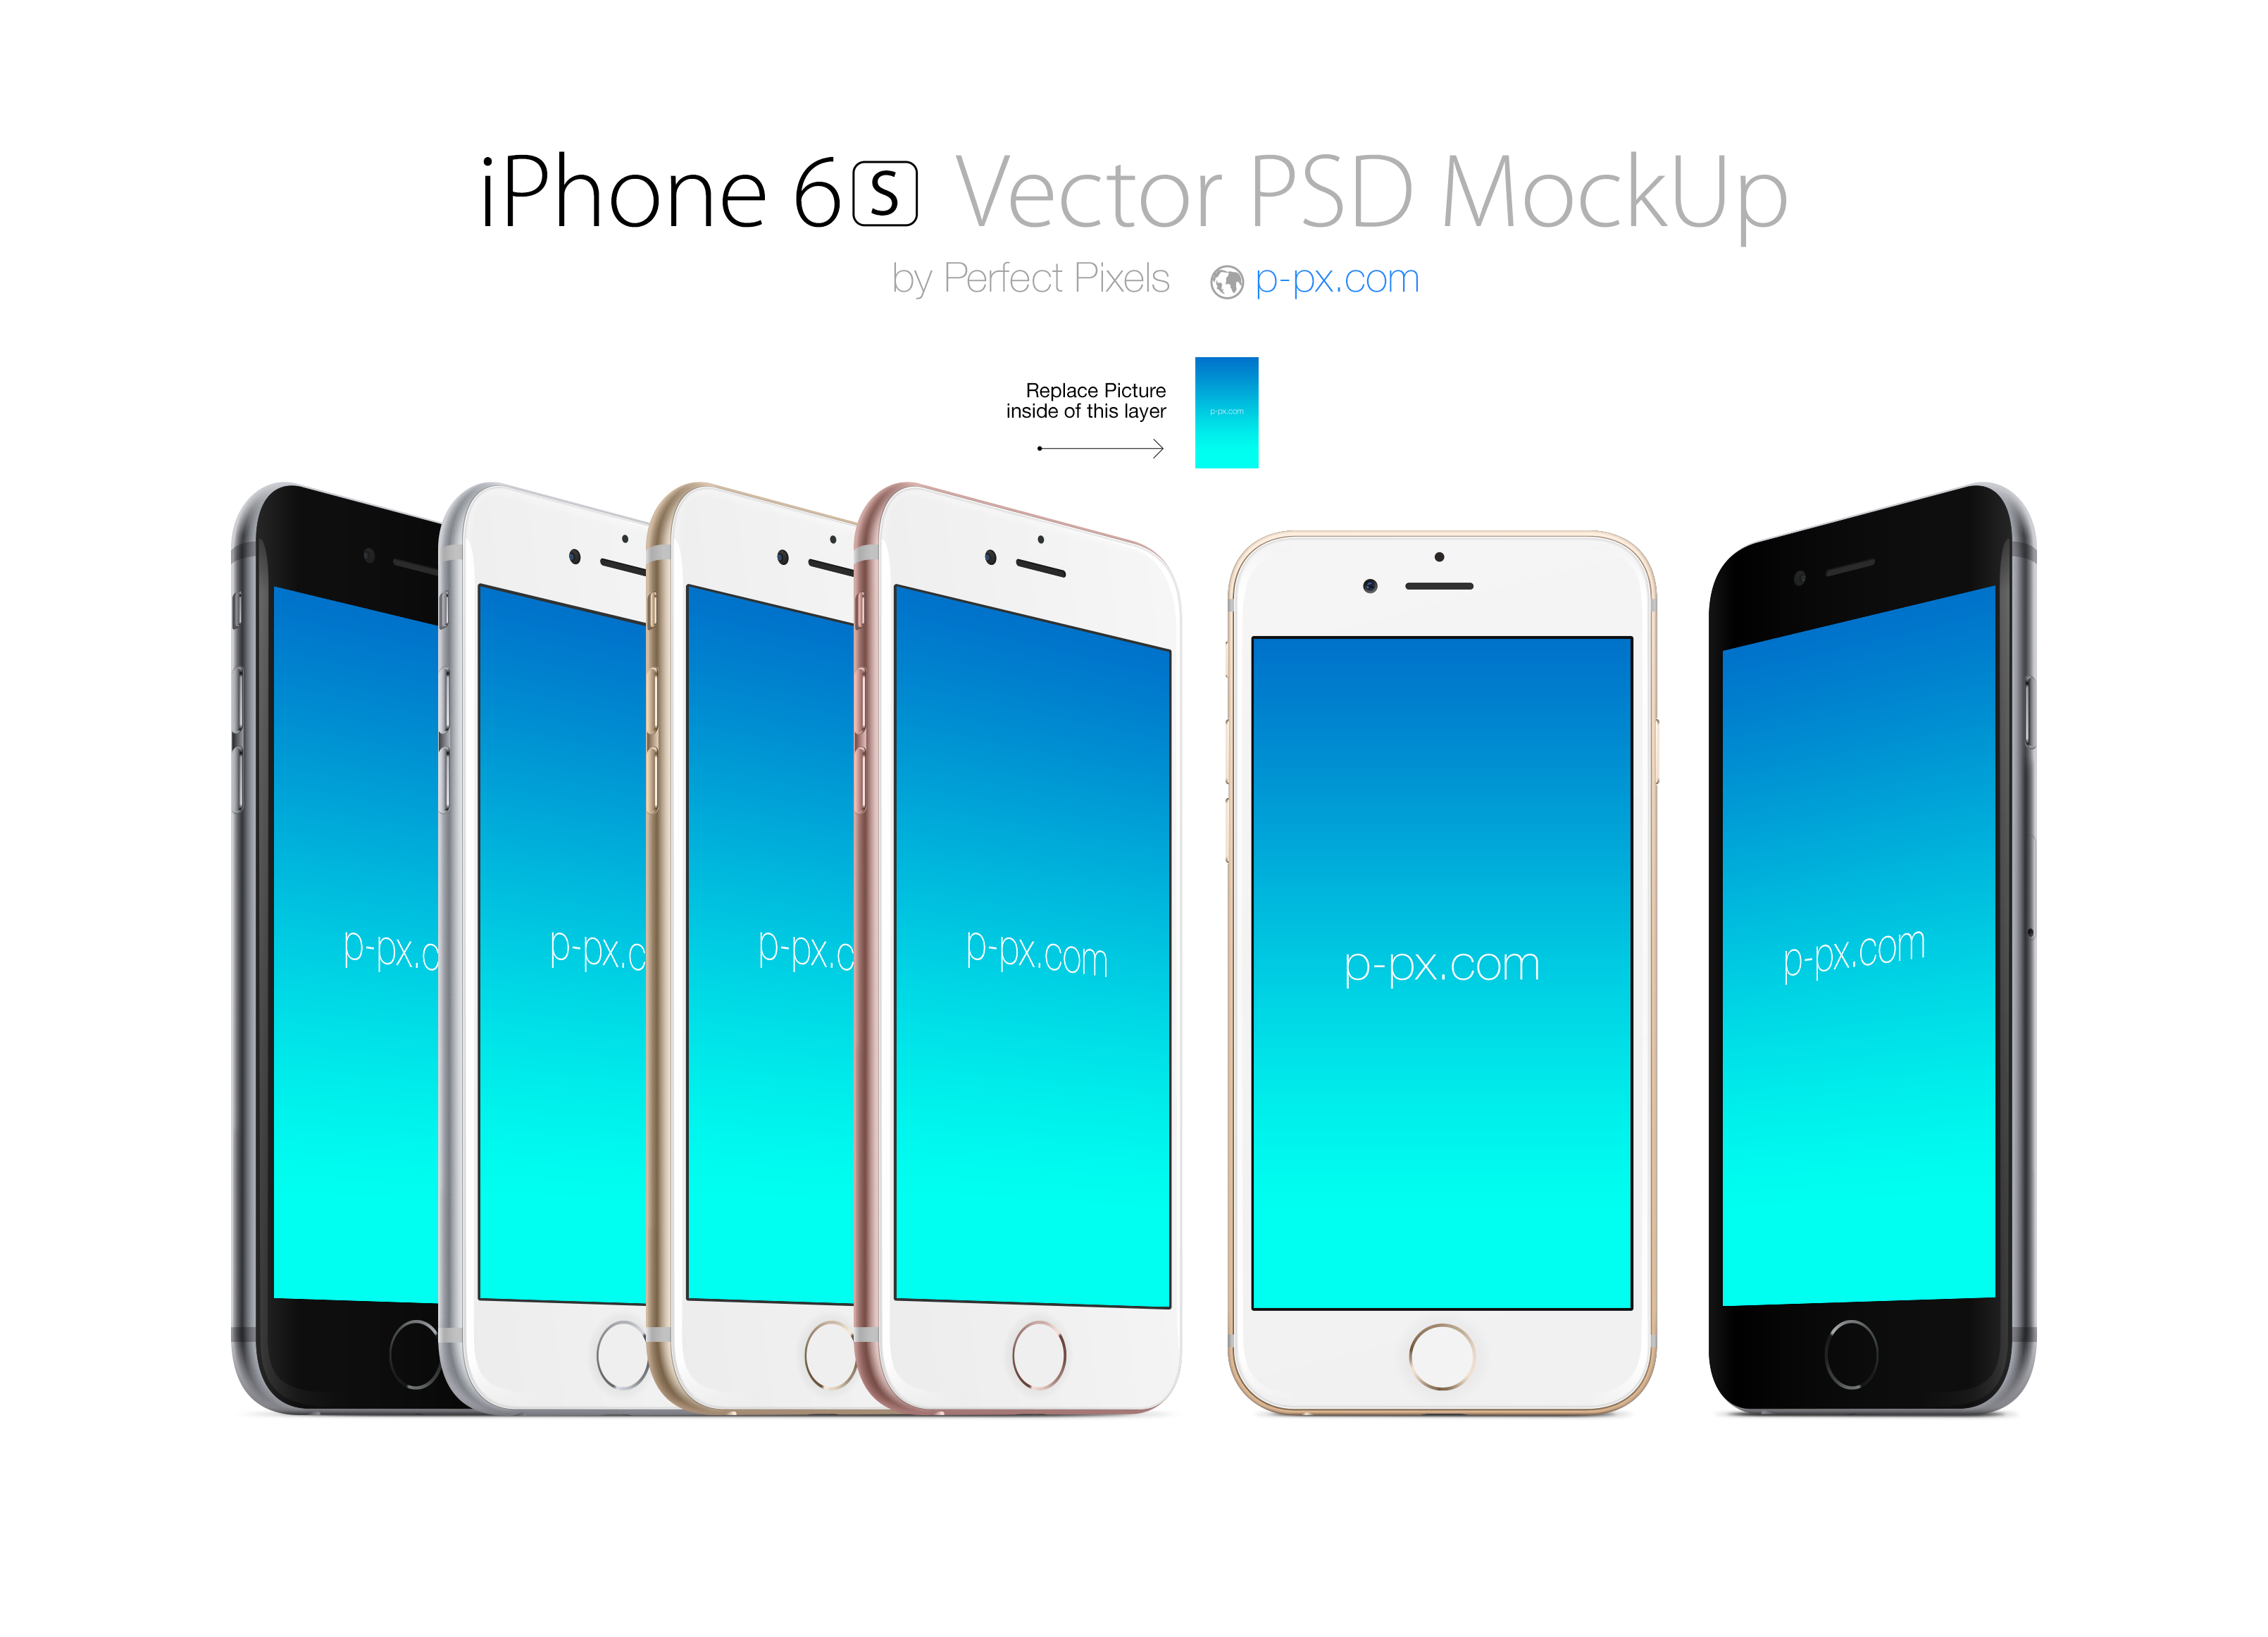 iphone 6s front and angled views psd + ai mockup. perfect pixels, Presentation templates